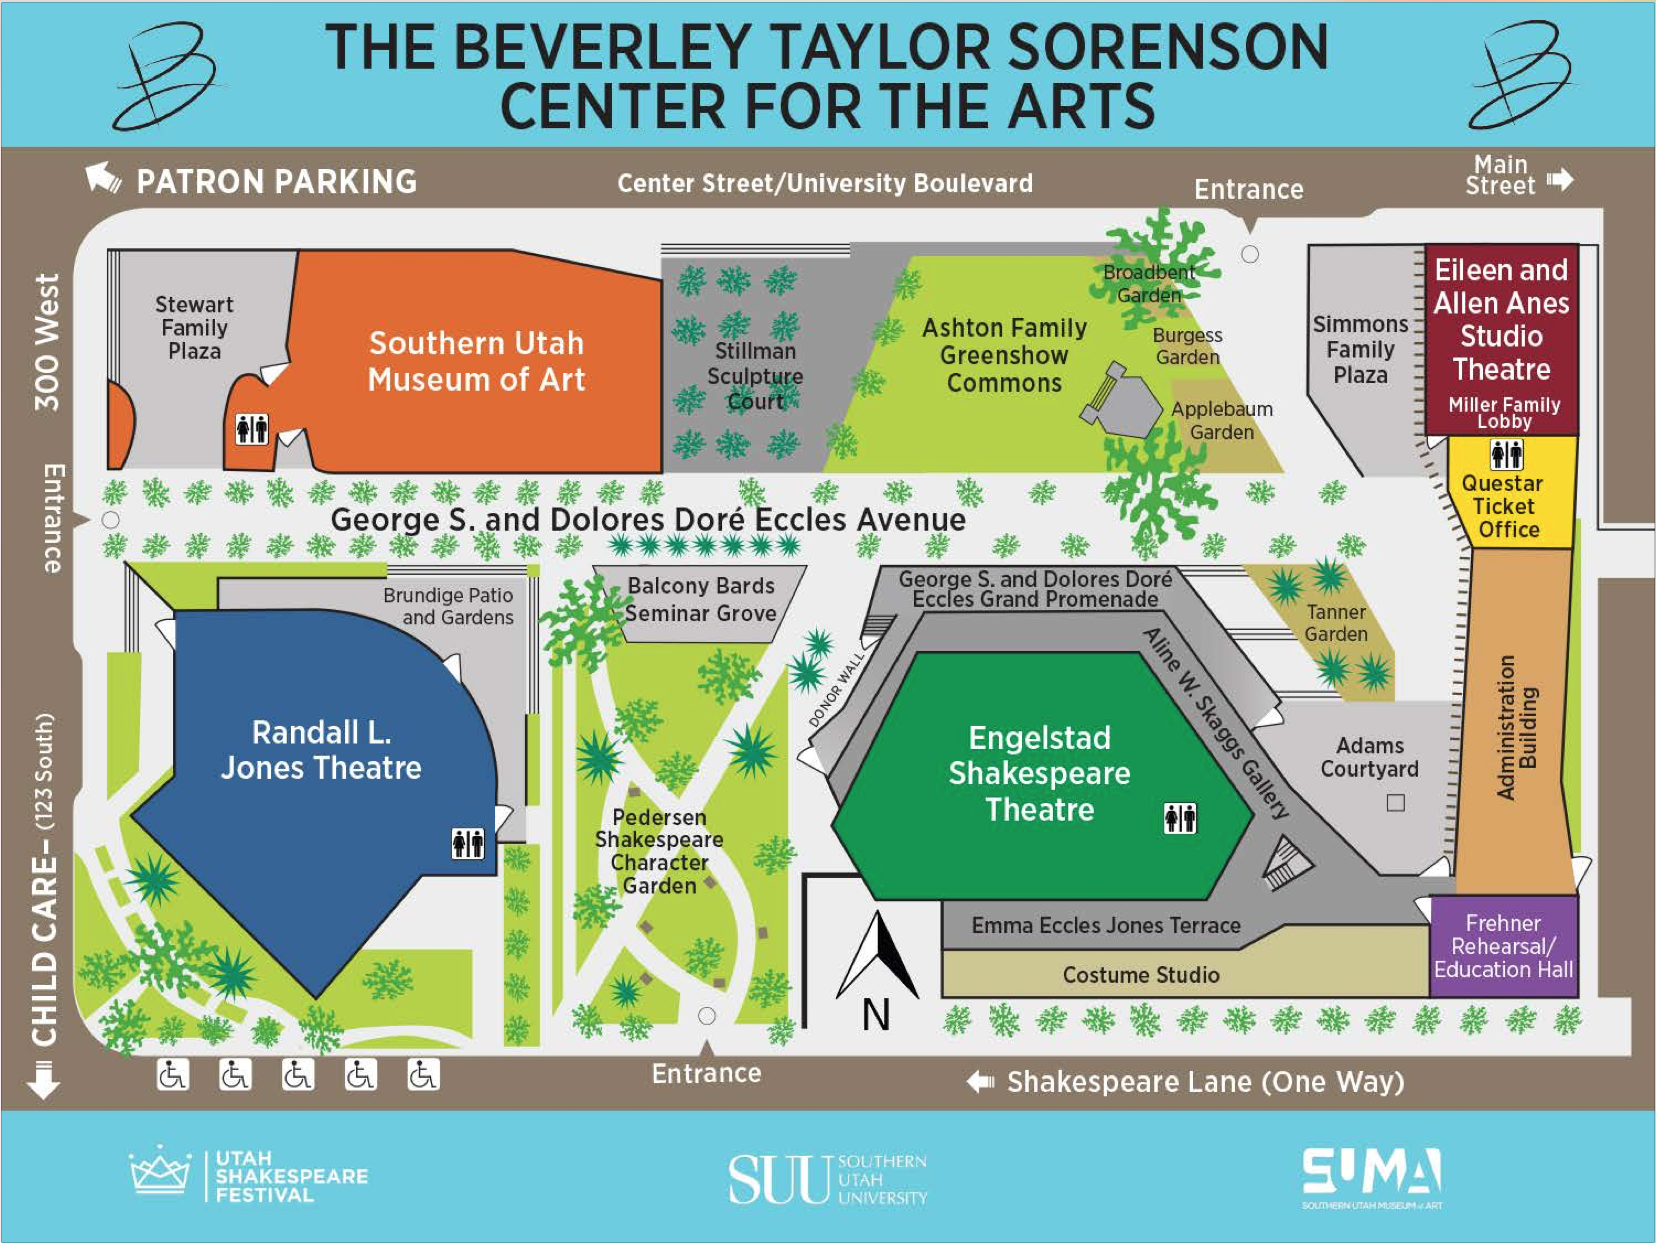 The Beverley Sorenson Center for the Arts 2016 | Site map courtesy of The Beverley; St. George News | Click on image to enlarge